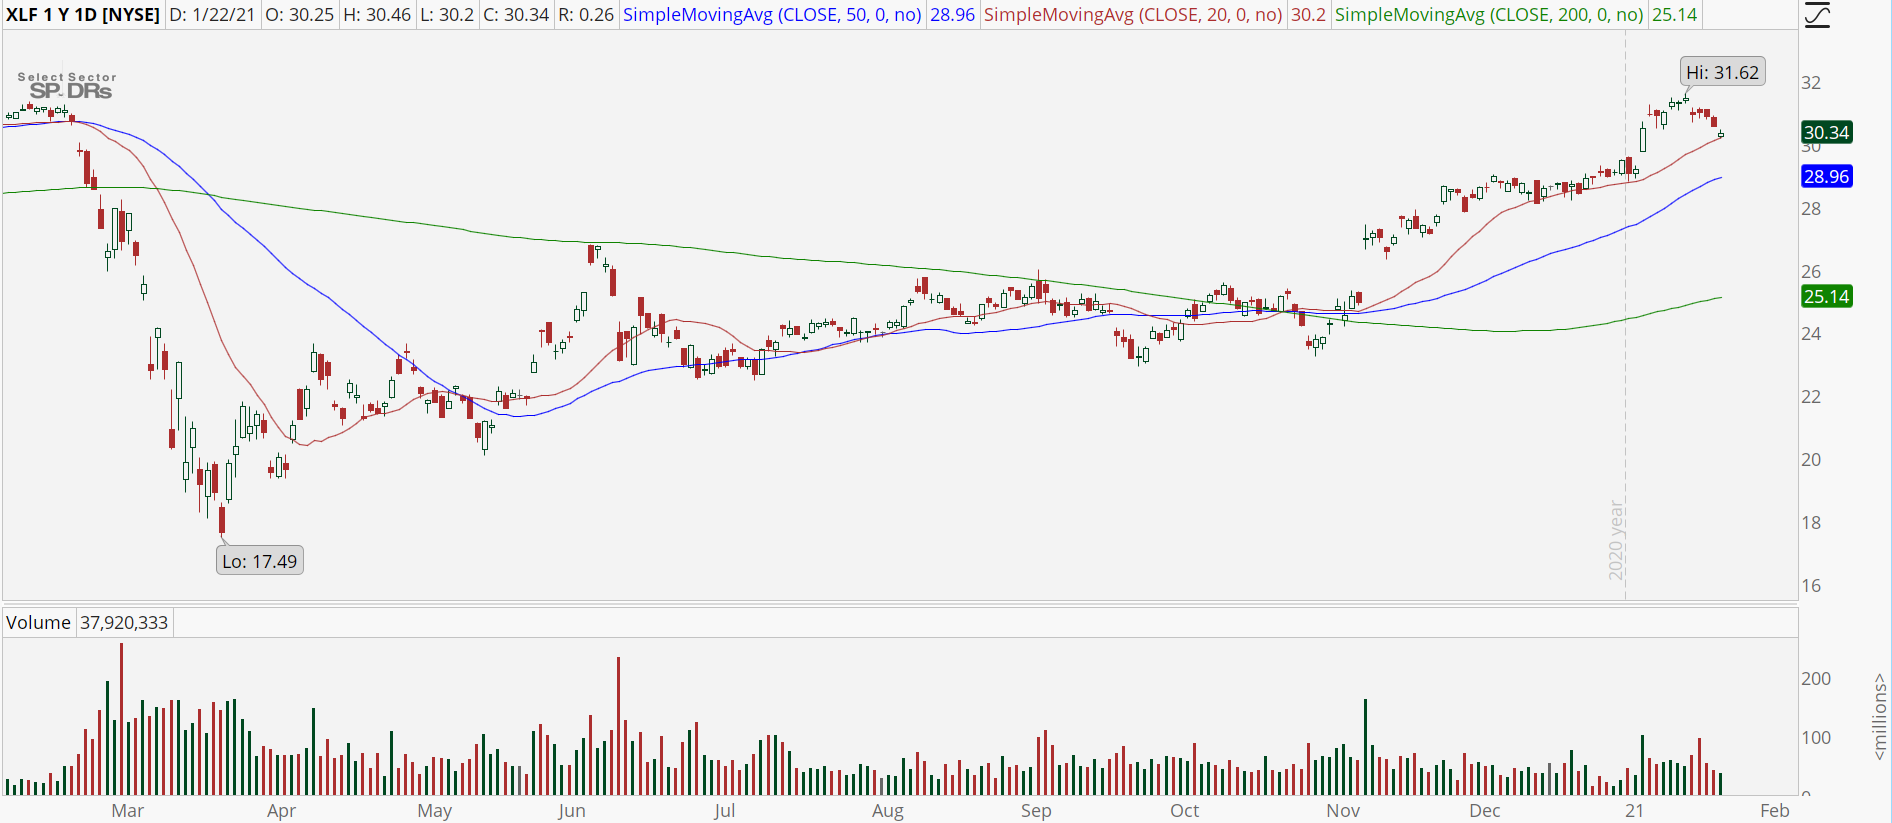 Financial Sector ETF (XLF) with bull retracement pattern